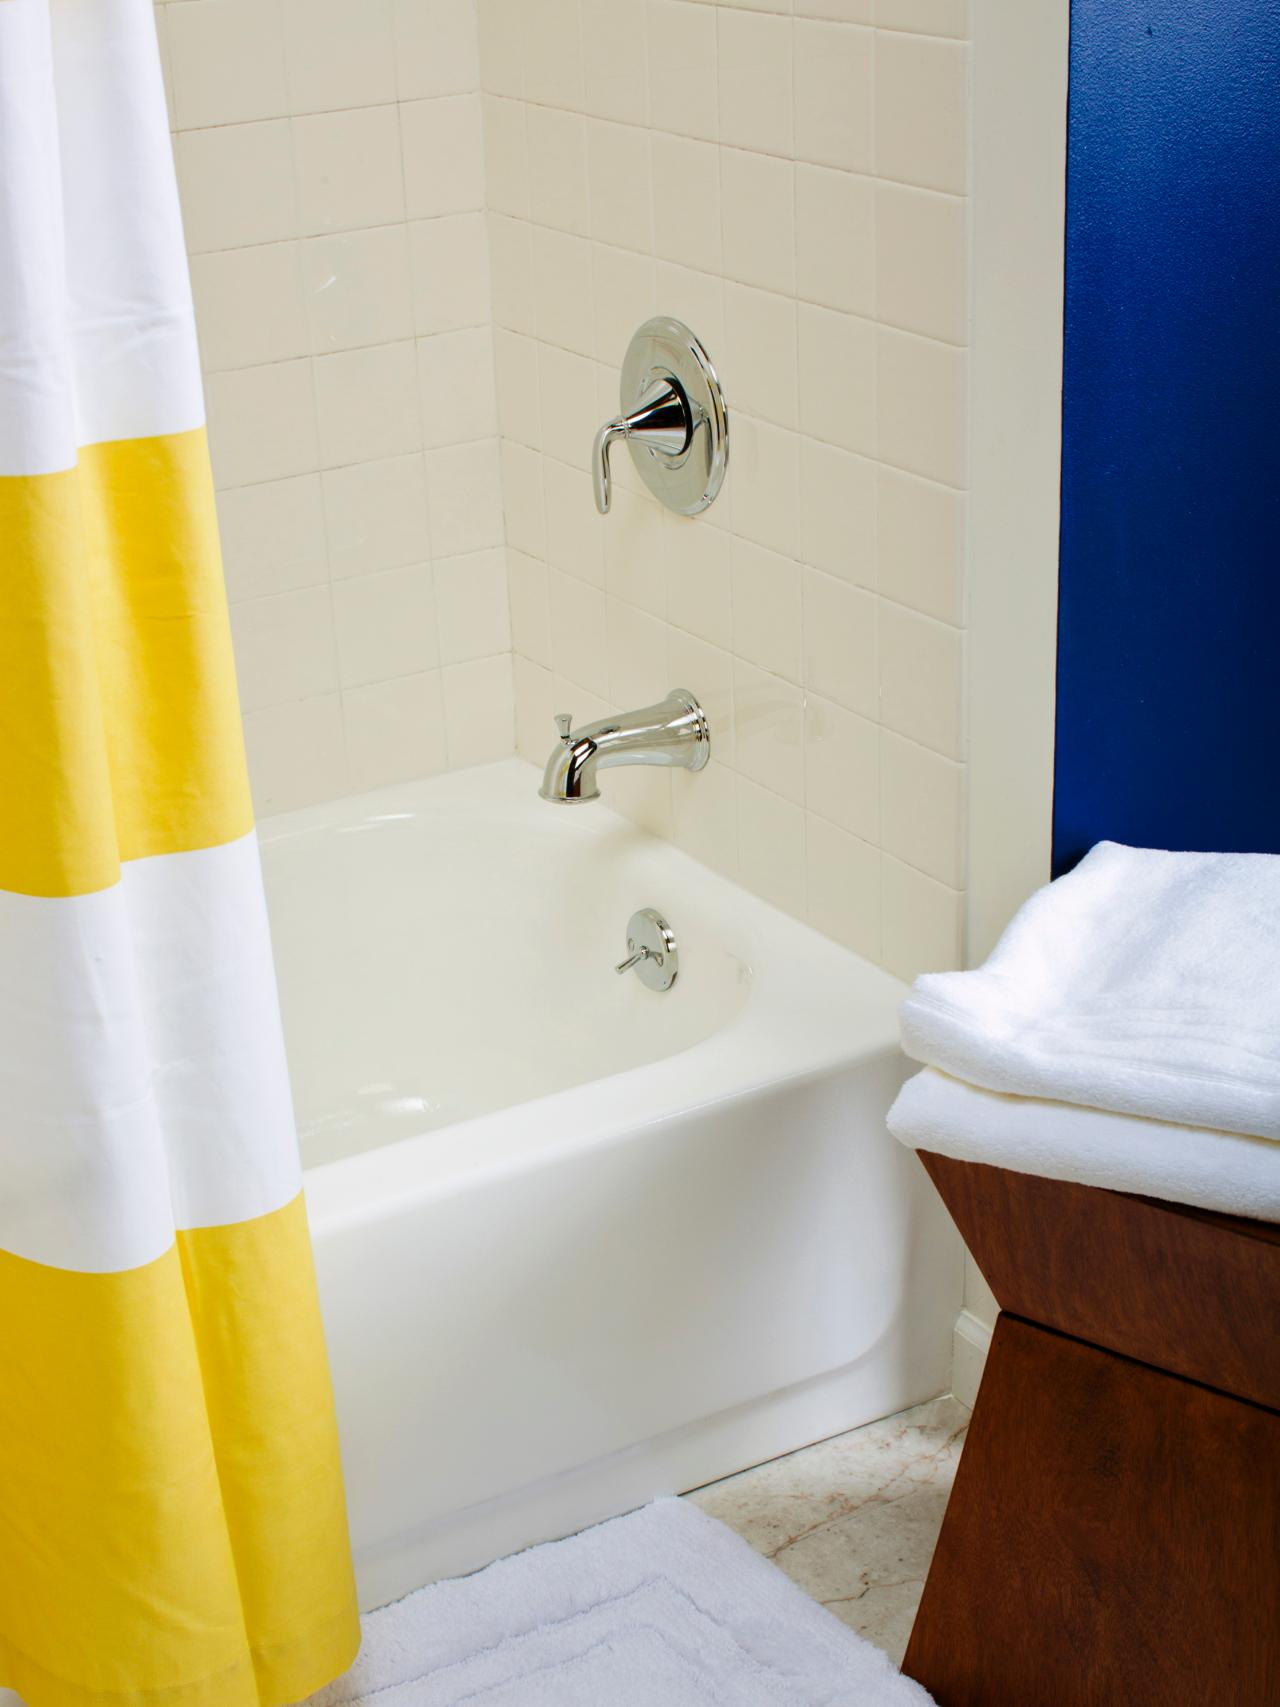 Tips from the pros on painting bathtubs and tile diy tips from the pros on painting bathtubs and tile dailygadgetfo Image collections